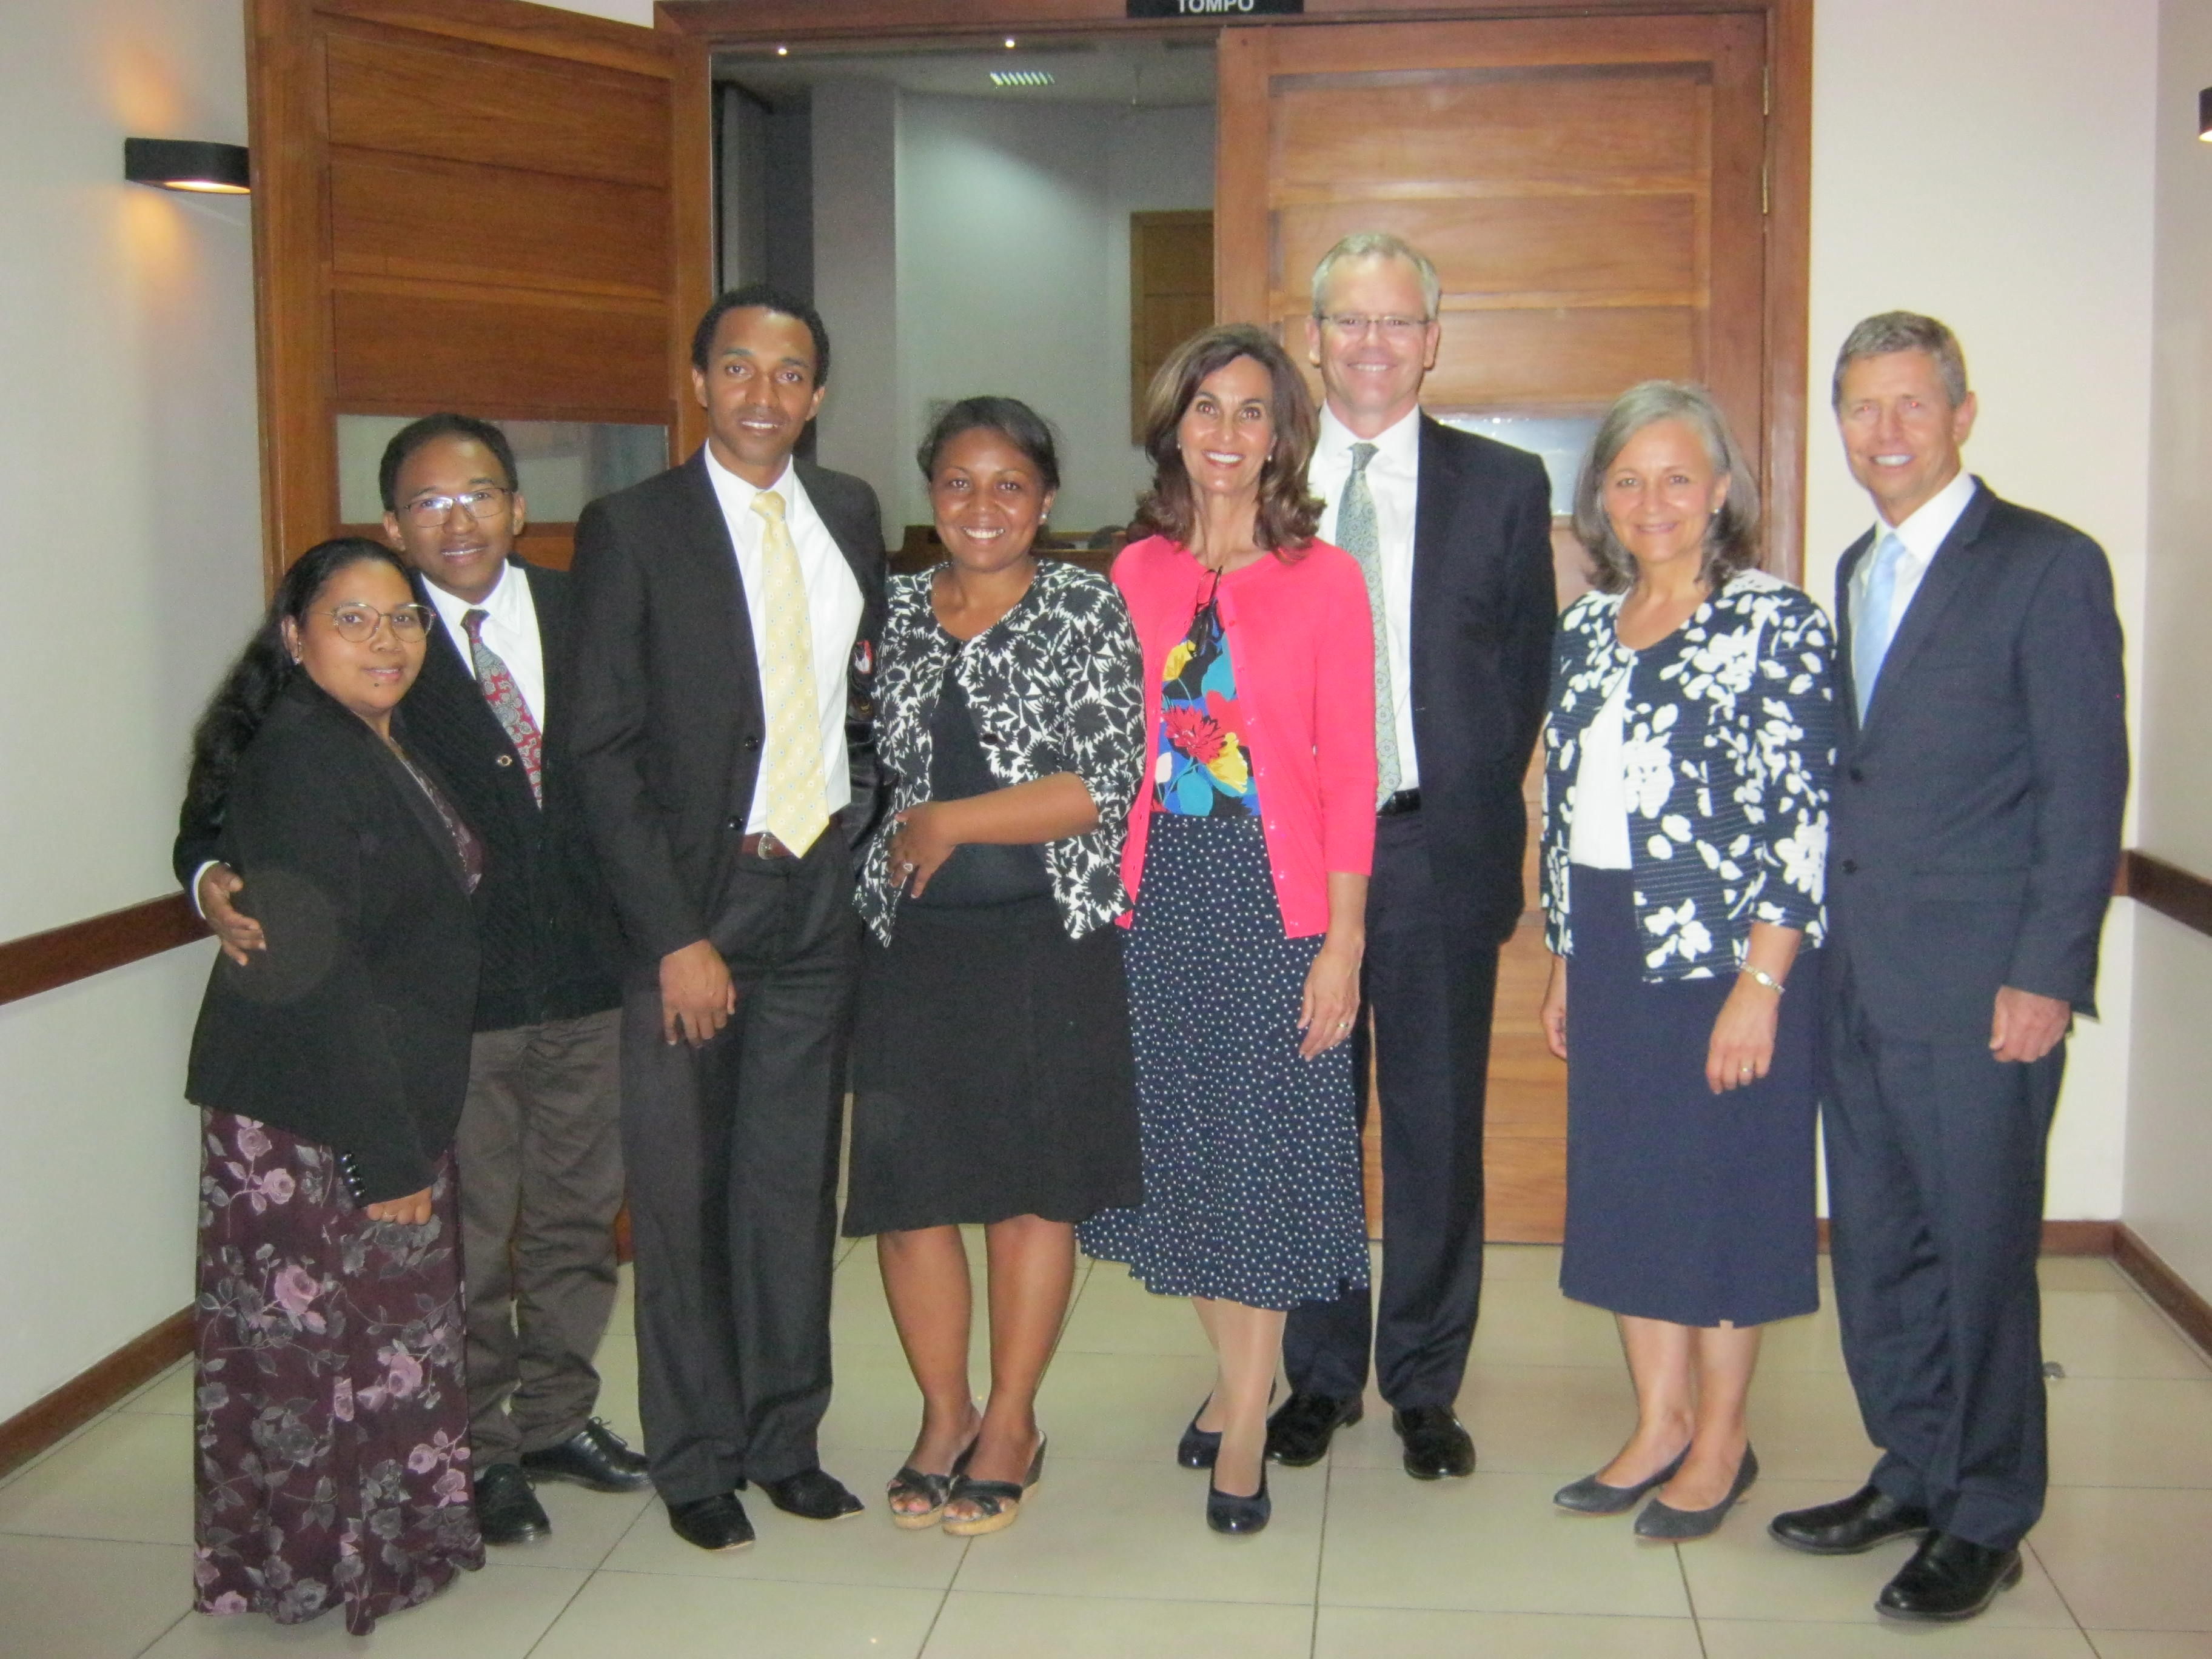 Sister Lisa L. Harkness, first counselor in the Primary general presidency, fourth from right, with her husband, David Harkness, are joined by Elder S. Mark Palmer, right, Africa Southeast Area president and his wife, Sister Jacqueline Palmer, in a photo with leaders and wives in Madagascar.